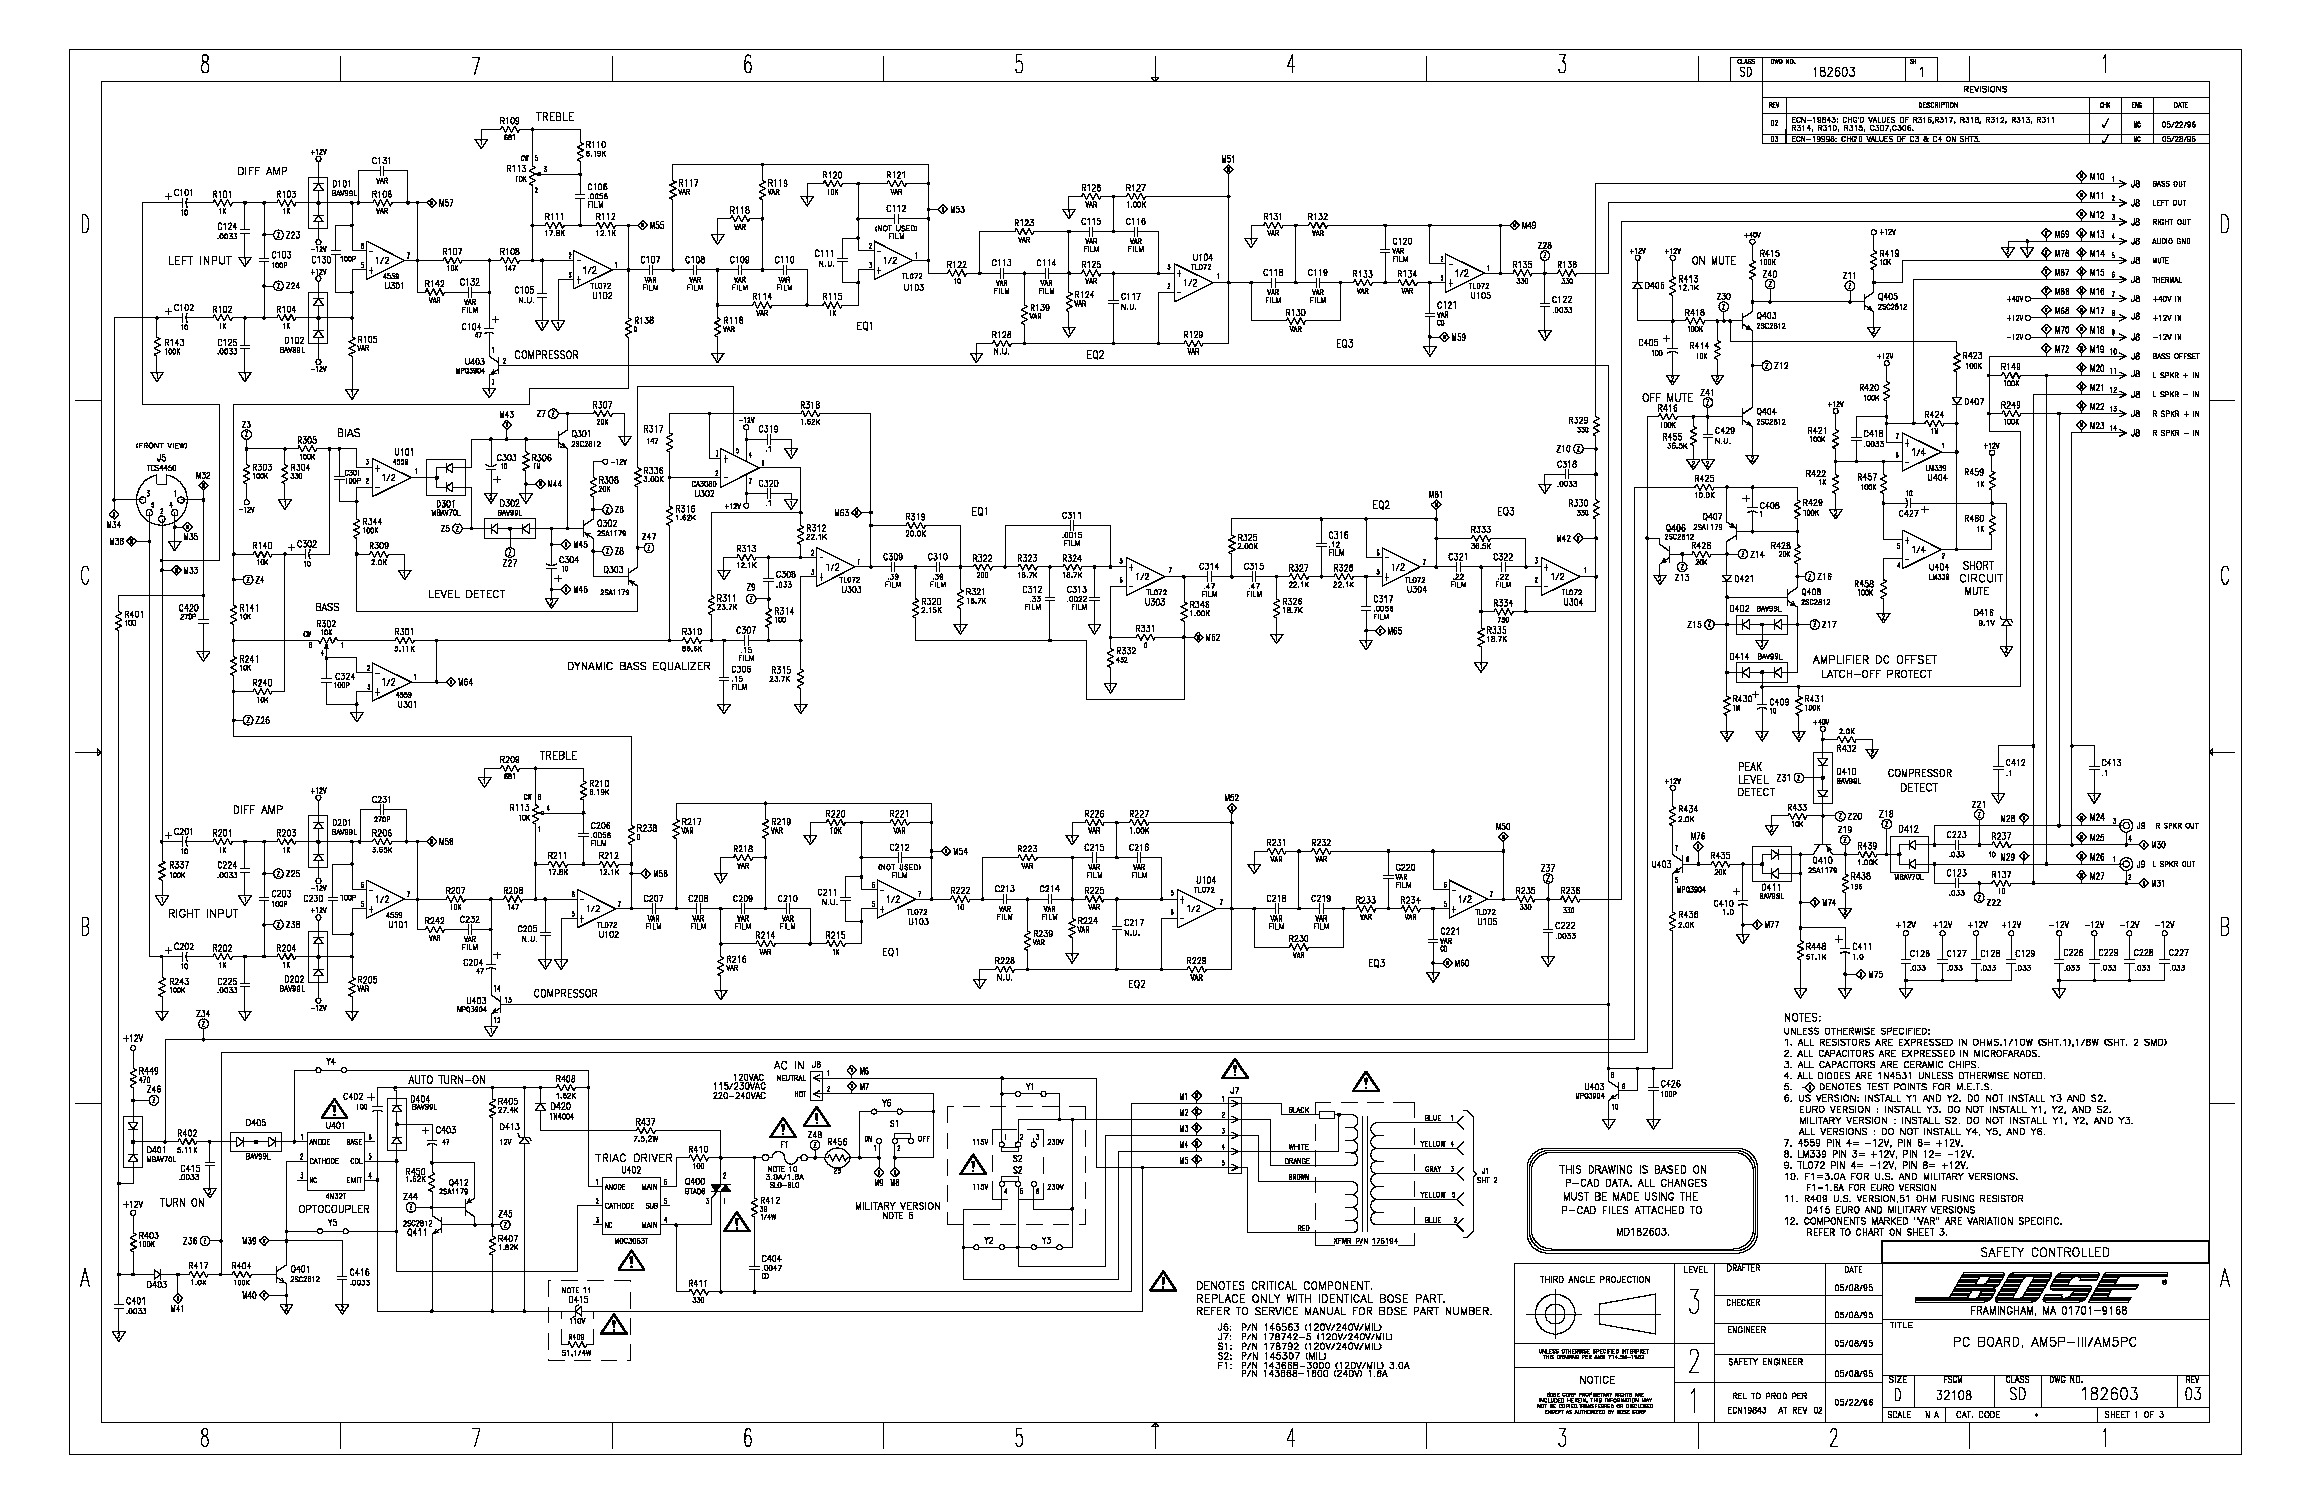 Bose AM-5P Schematic.pdf